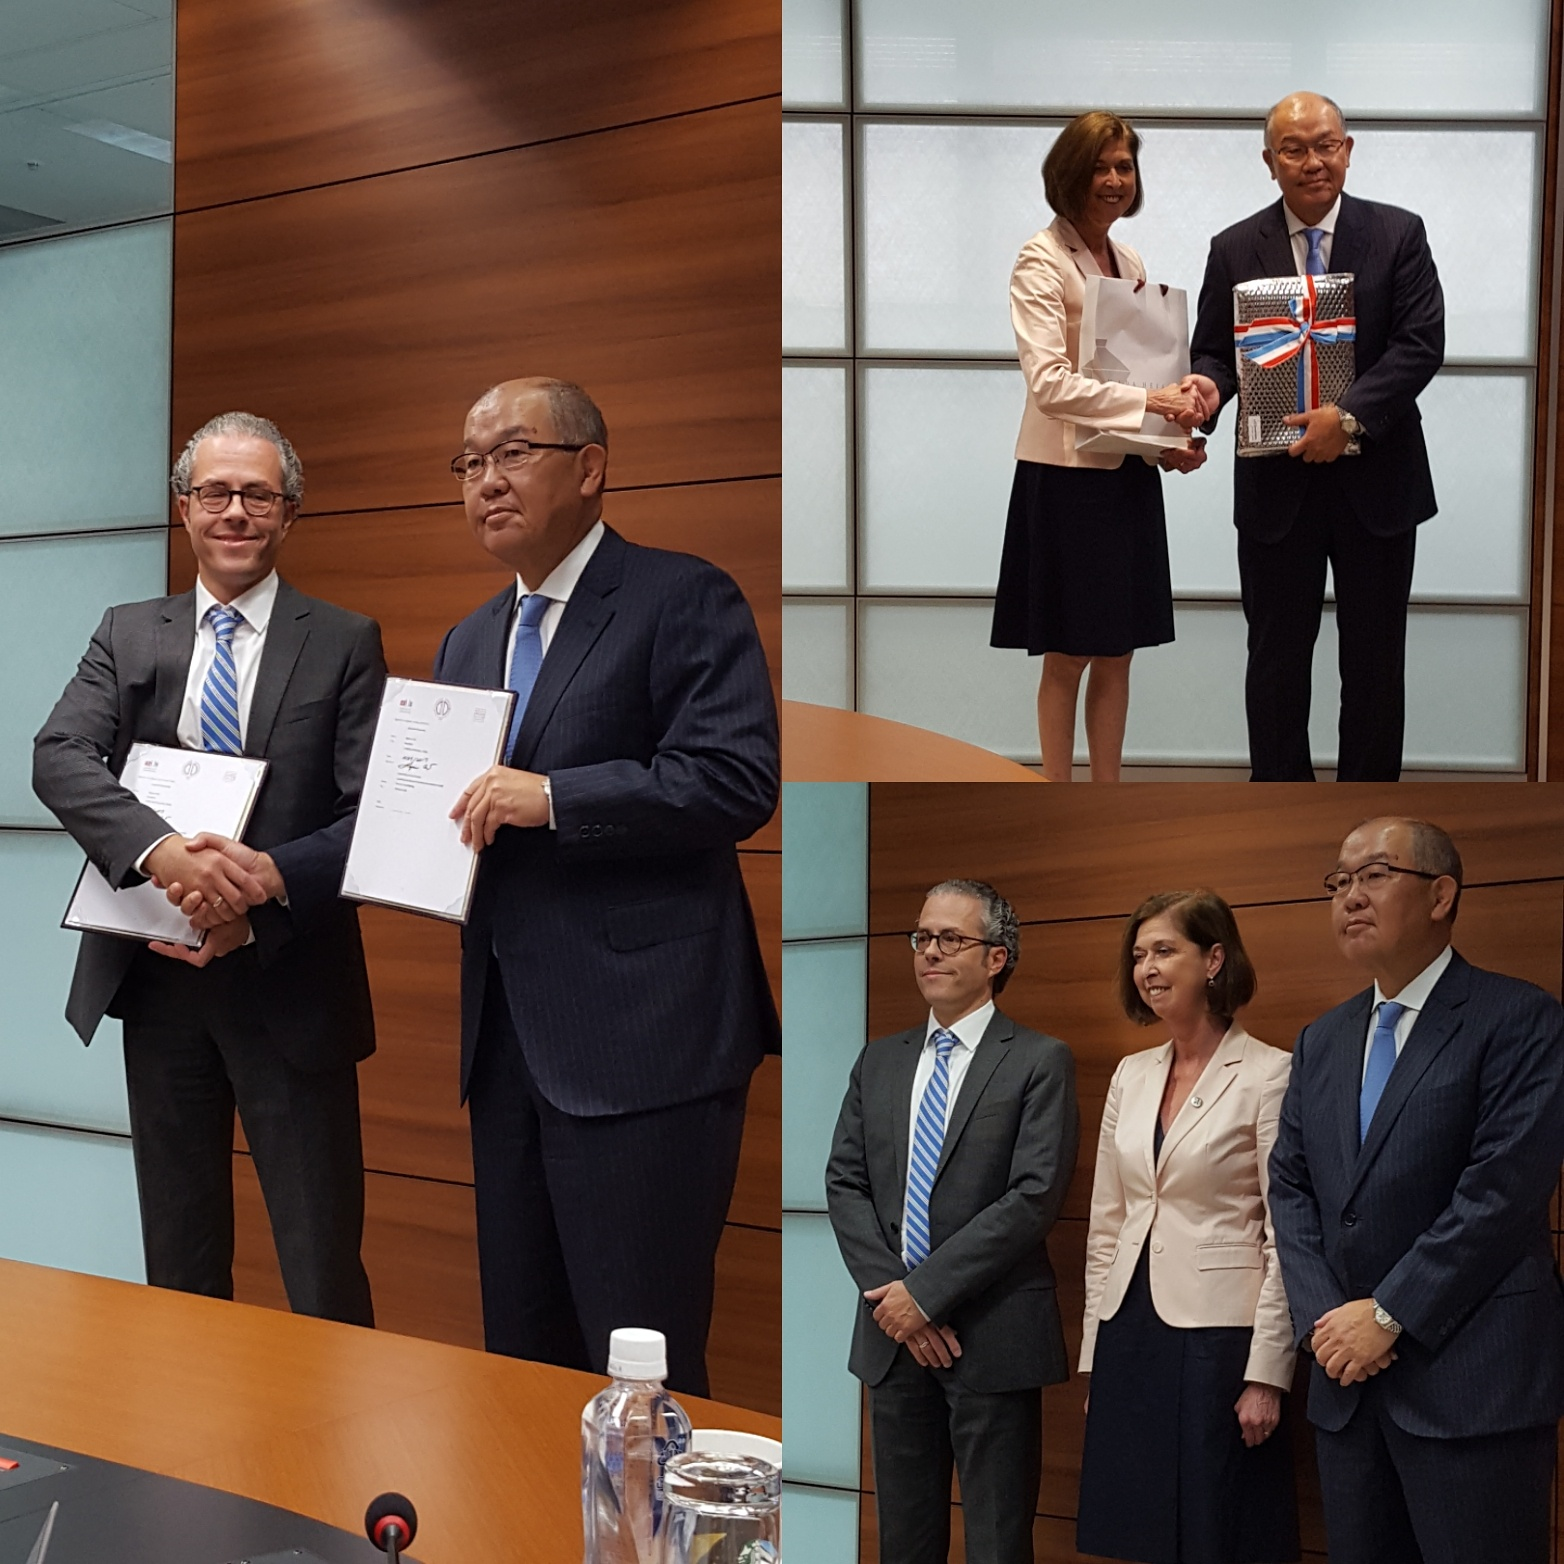 Luxembourg And Japan Strengthen Cooperation In Biomedical Research